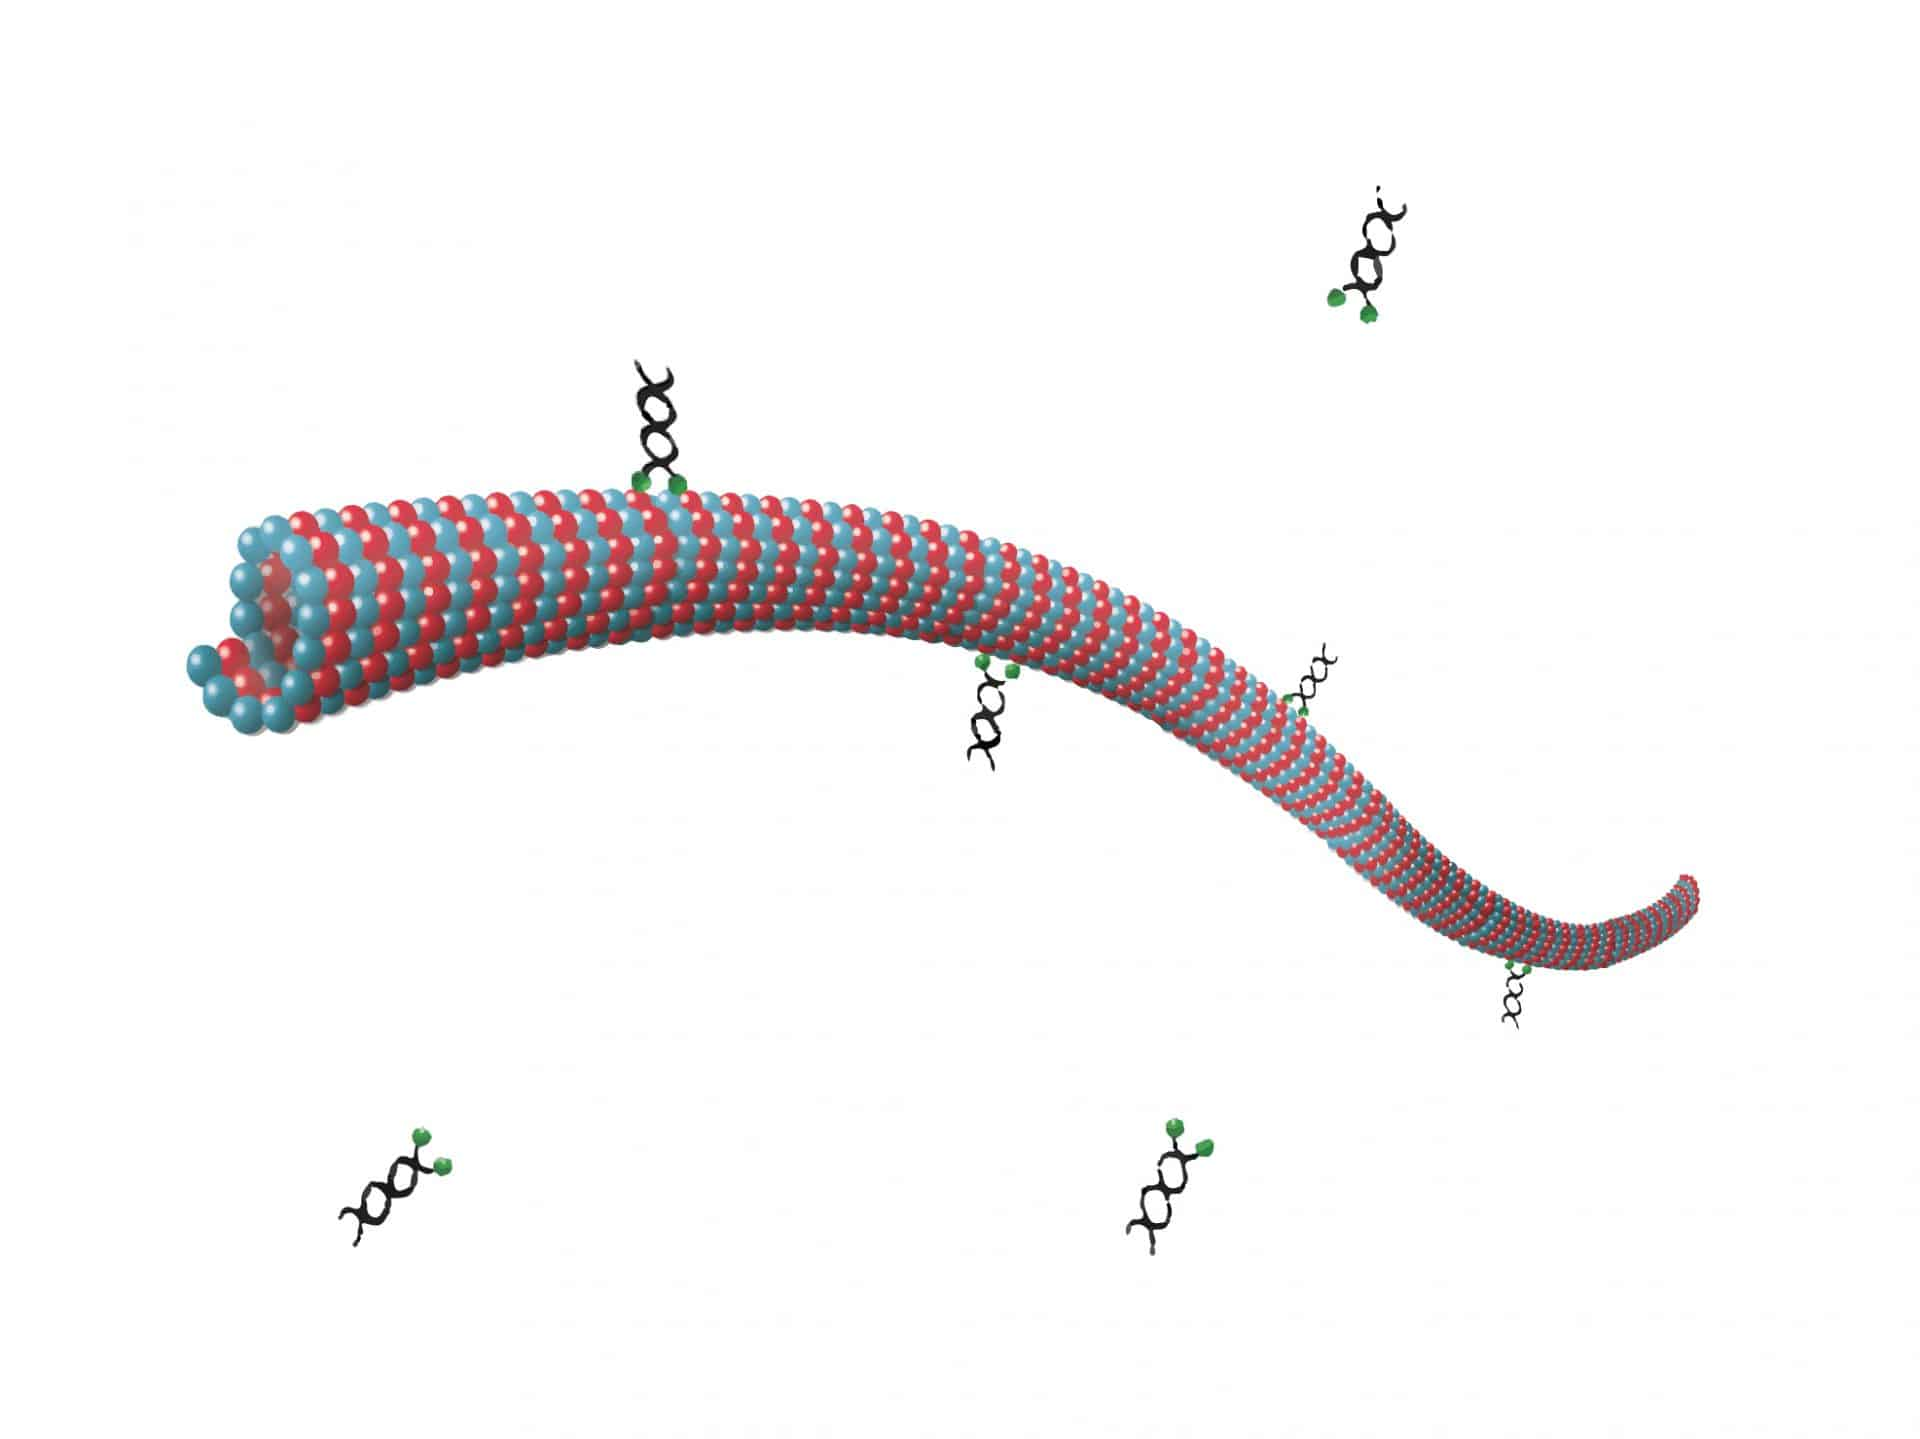 Microtubule co-pelleting assay graphical abstract